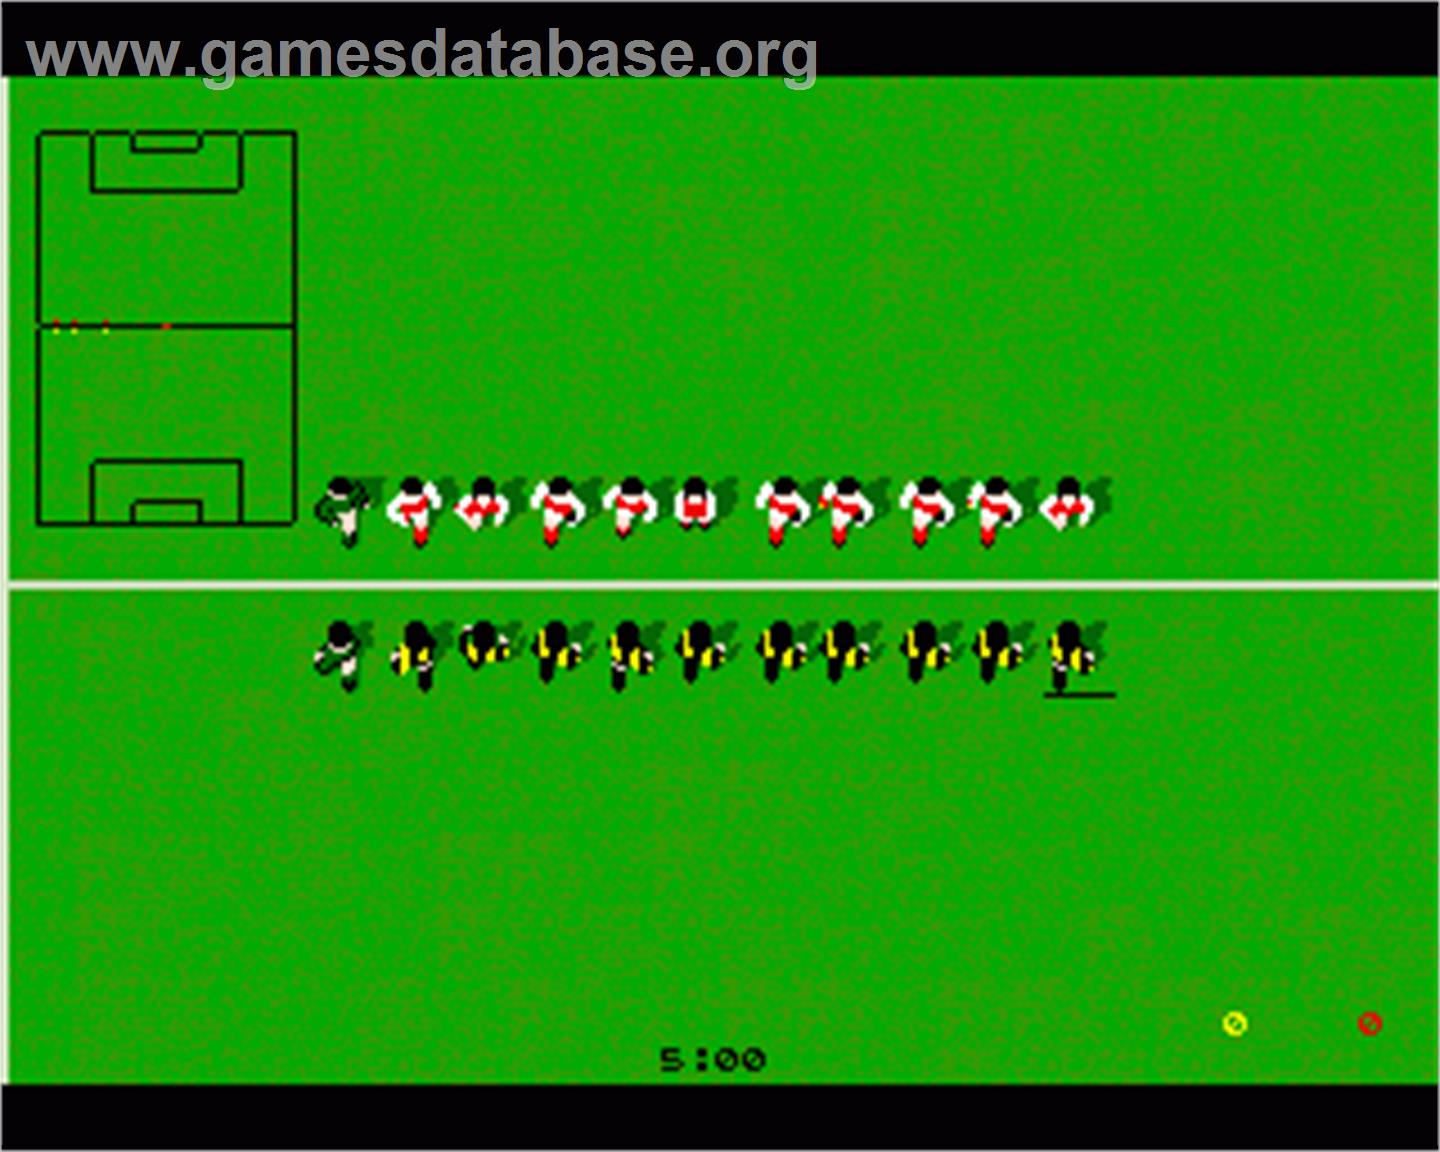 Kick Off 2 The Final Whistle Commodore Amiga Artwork In Game